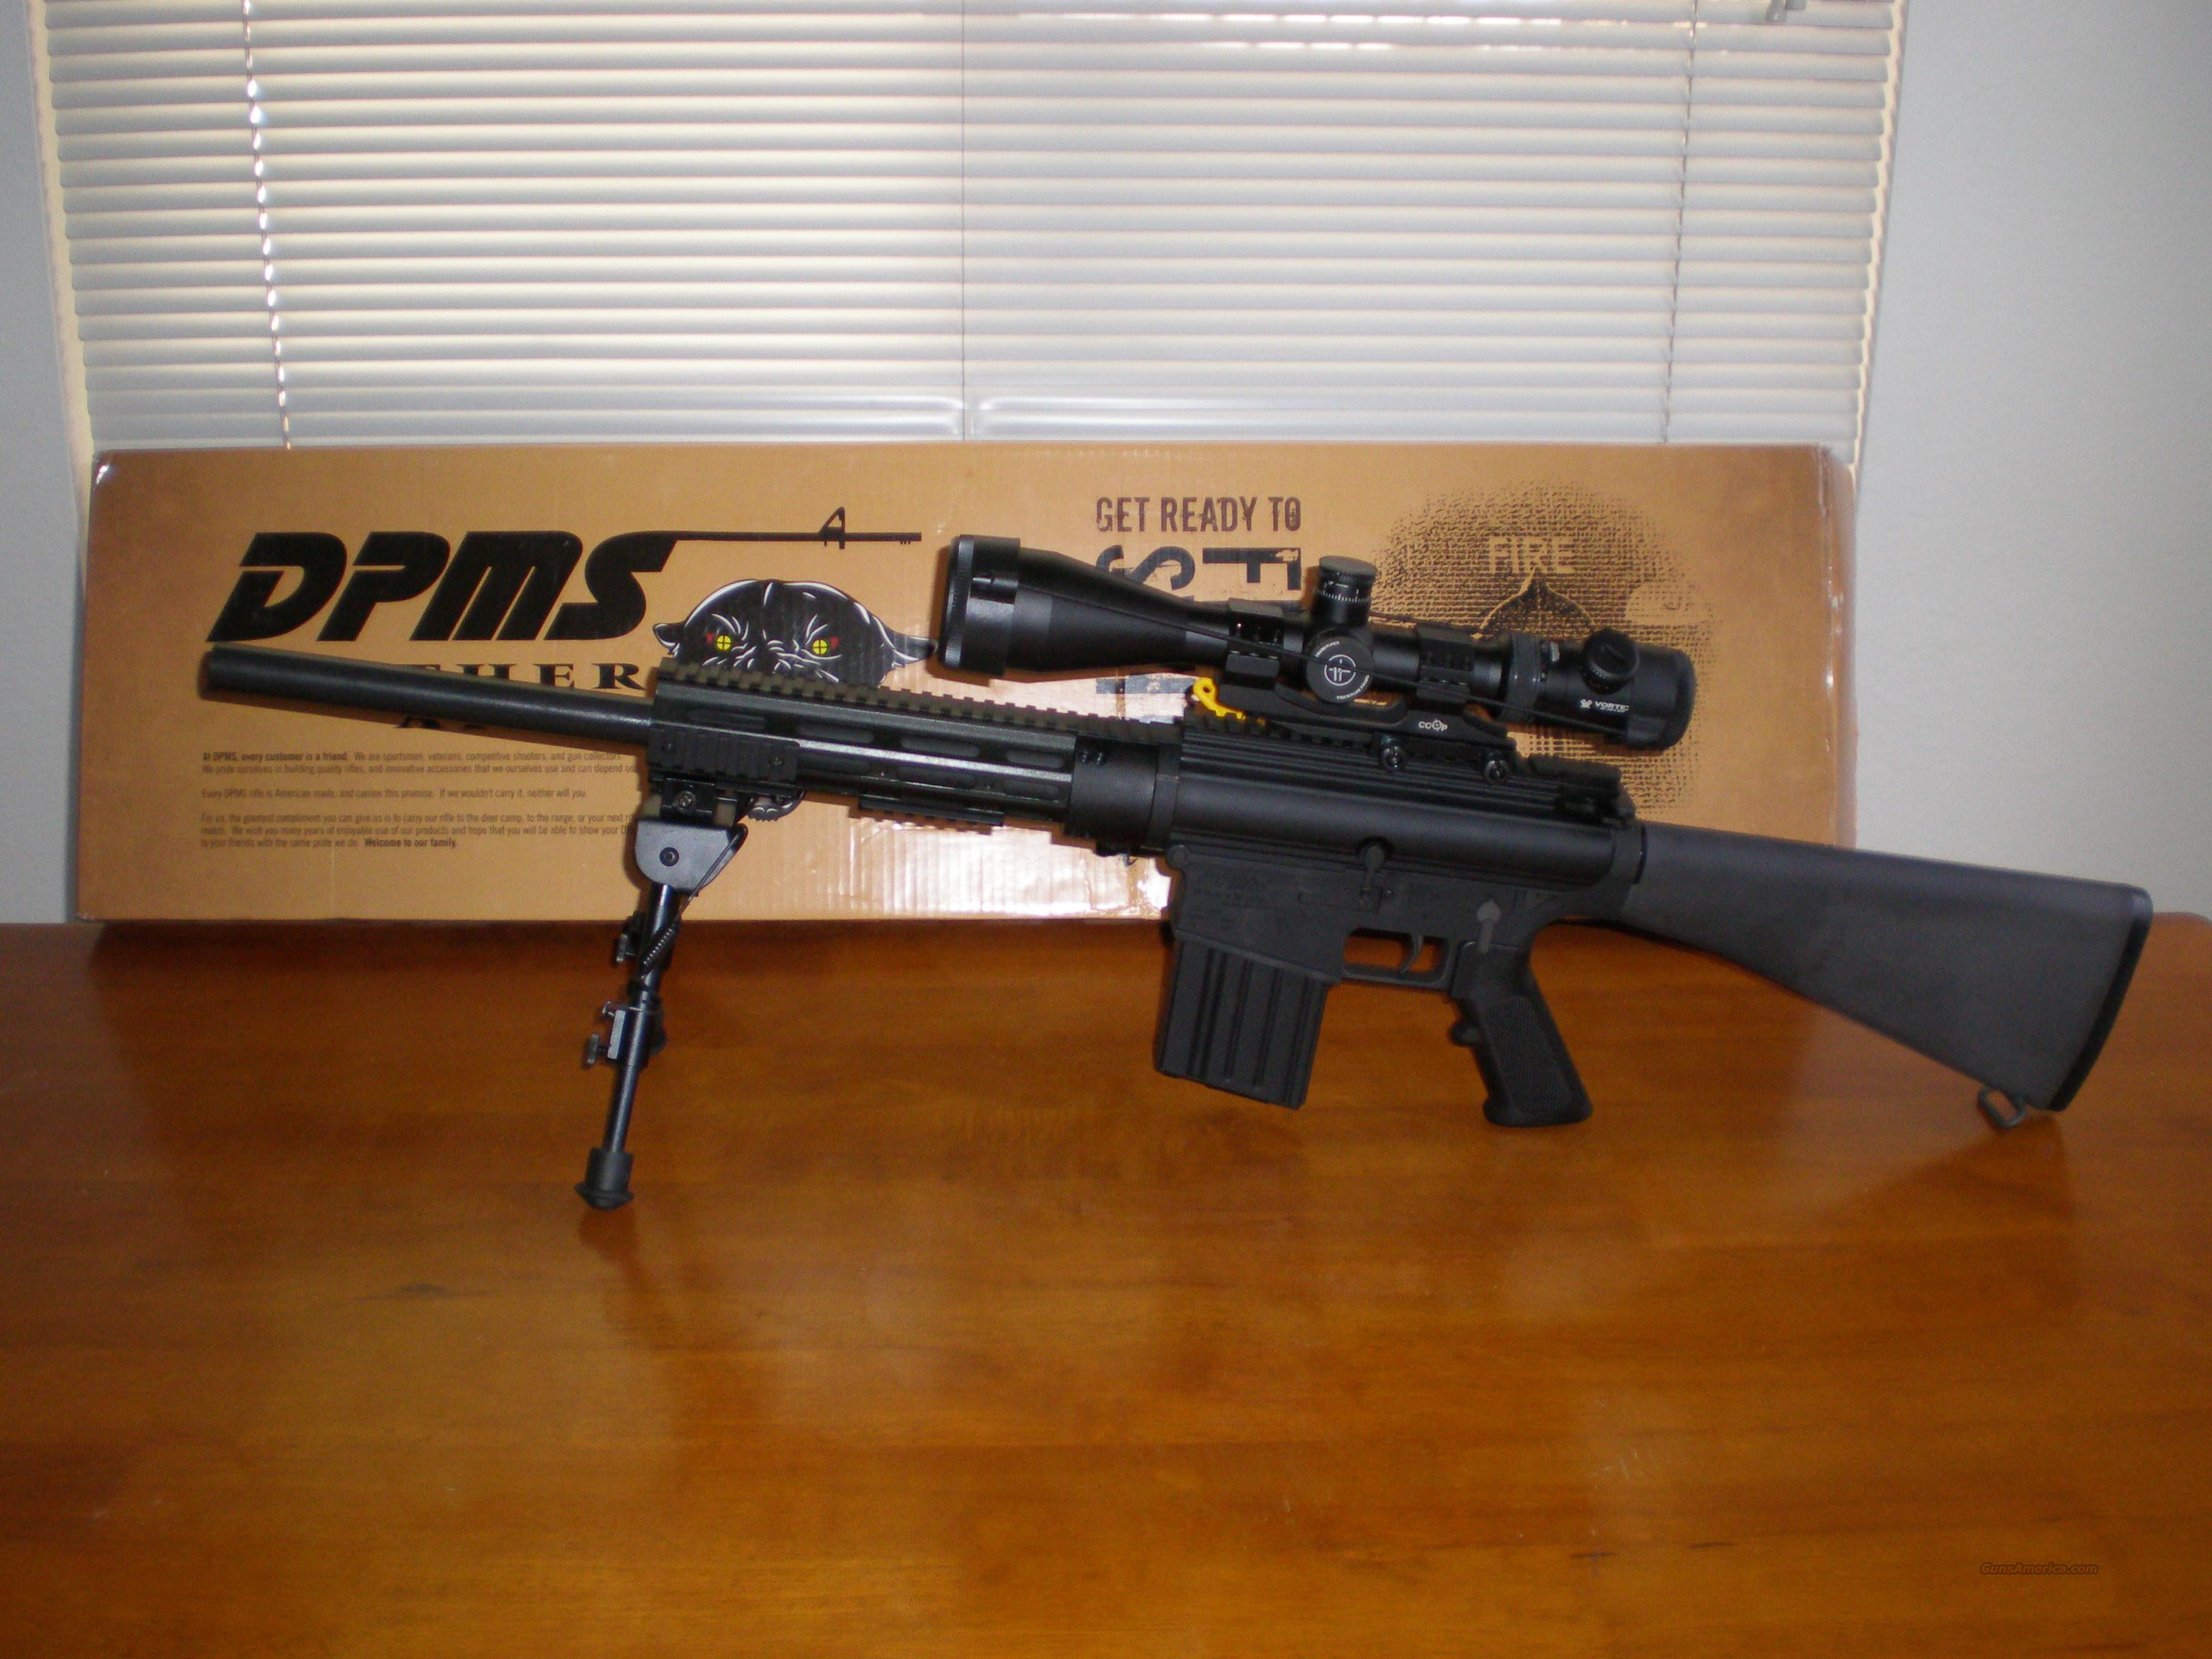 NIB DPMS LR 308-B with Vortex Viper Scope